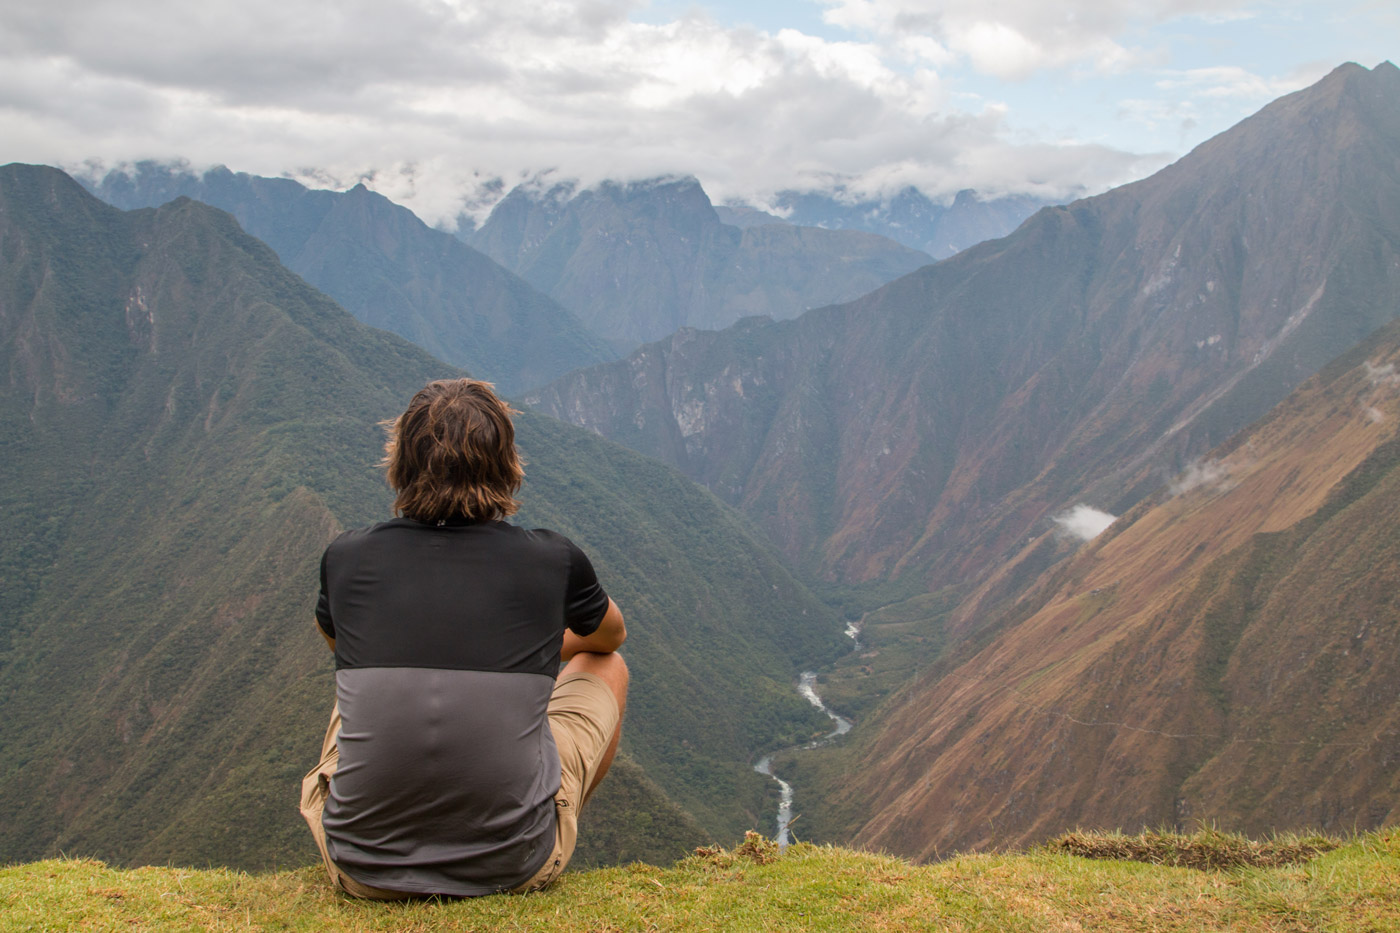 Stopping to take in the views along the Inca Trail